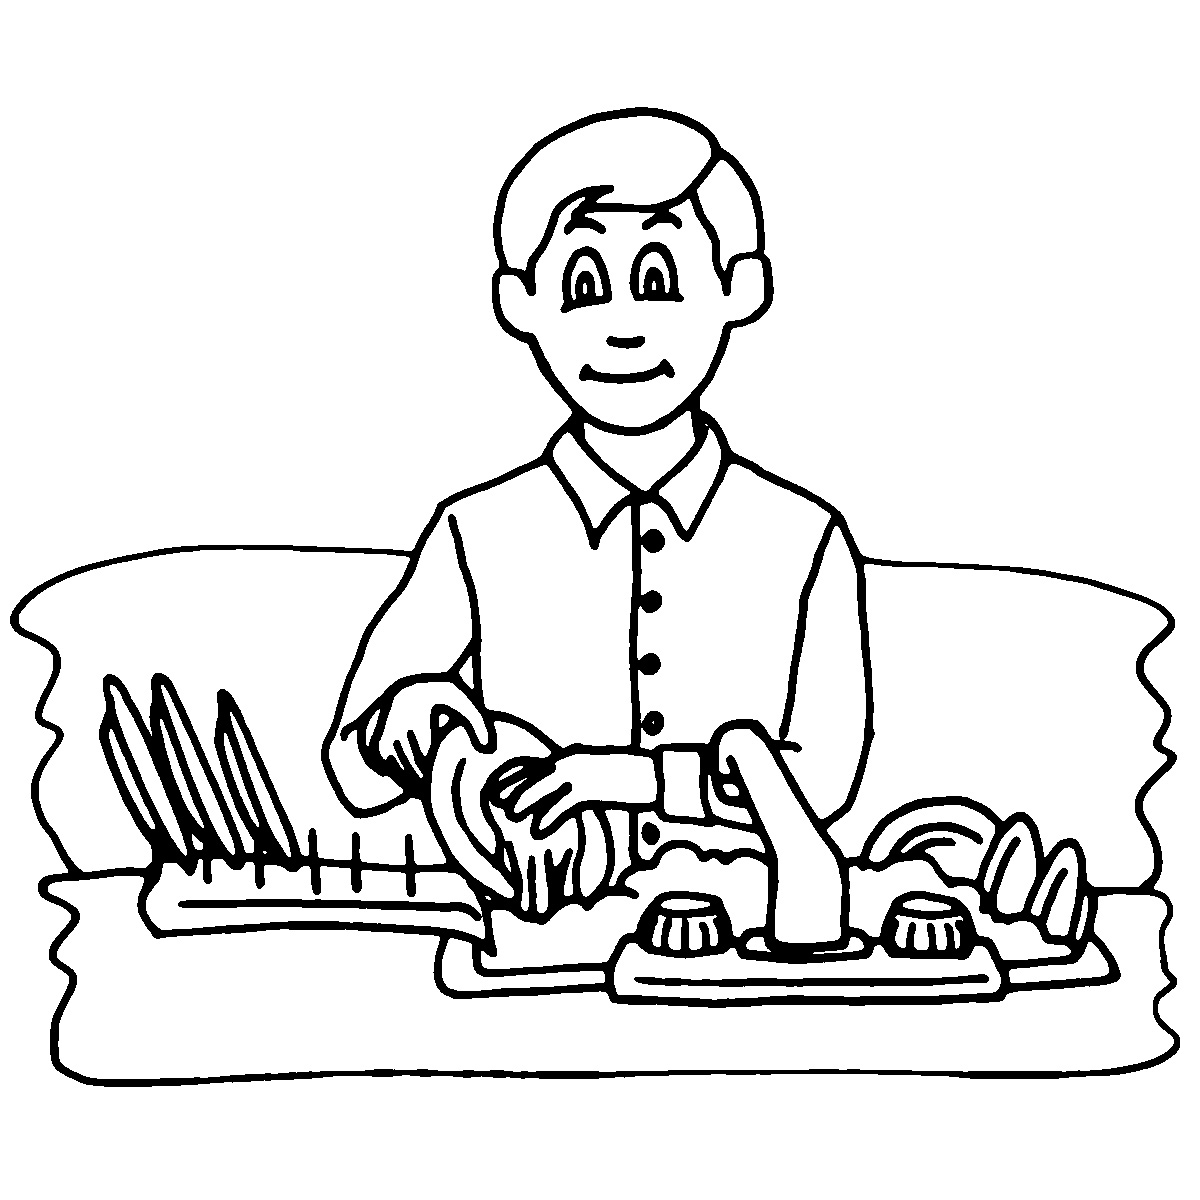 Doing dishes chores clipart